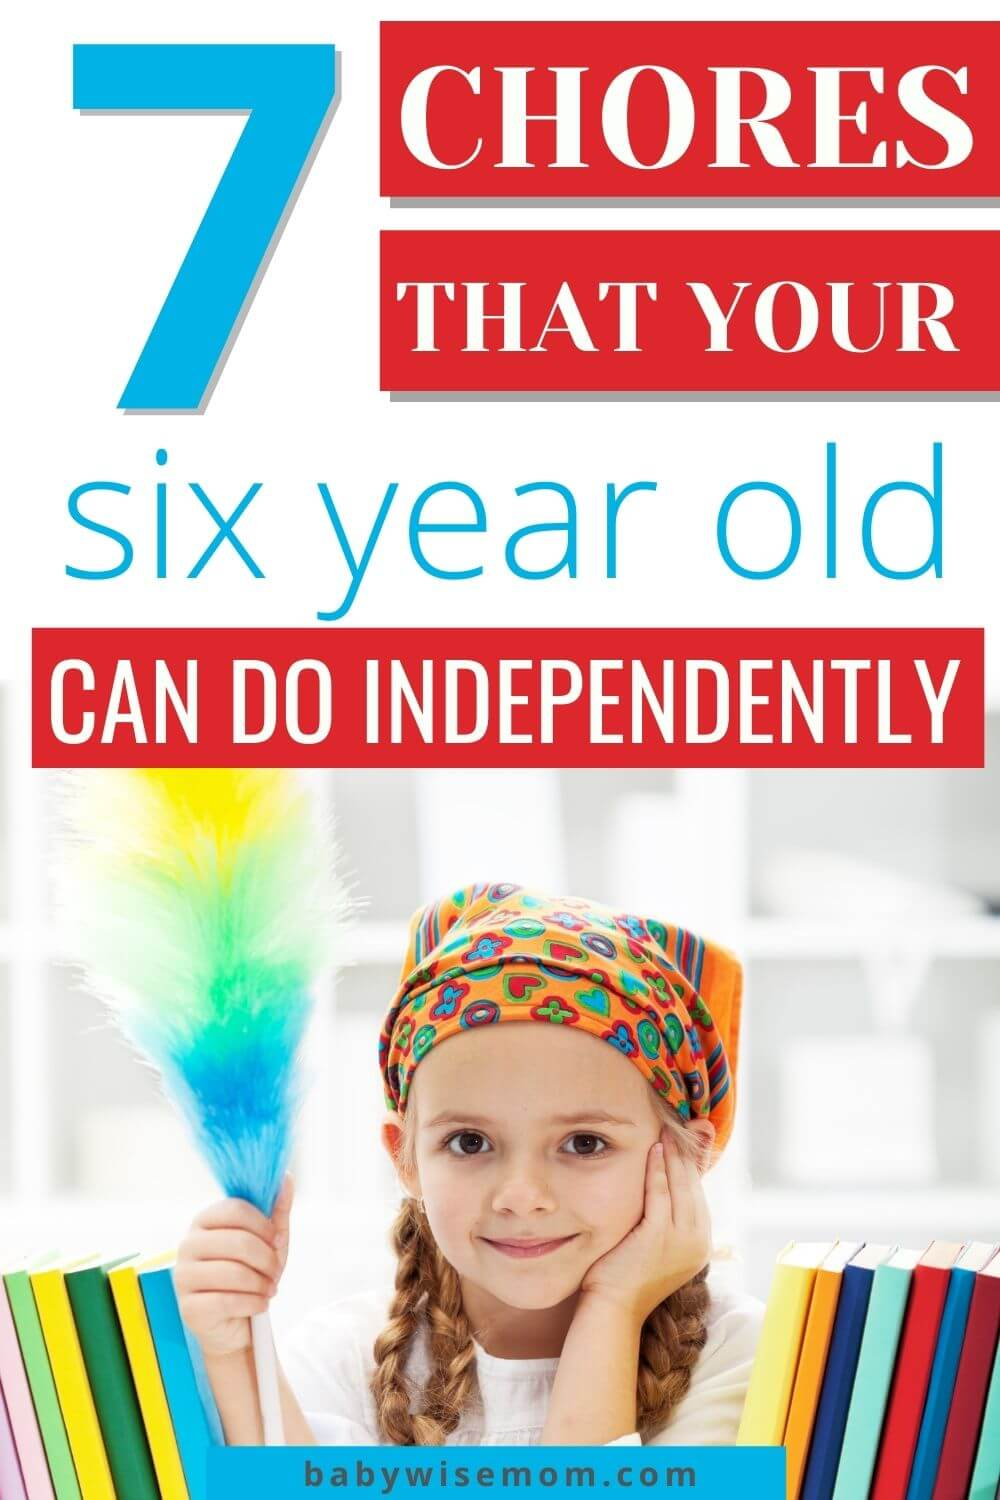 7 chores for your 6 year old